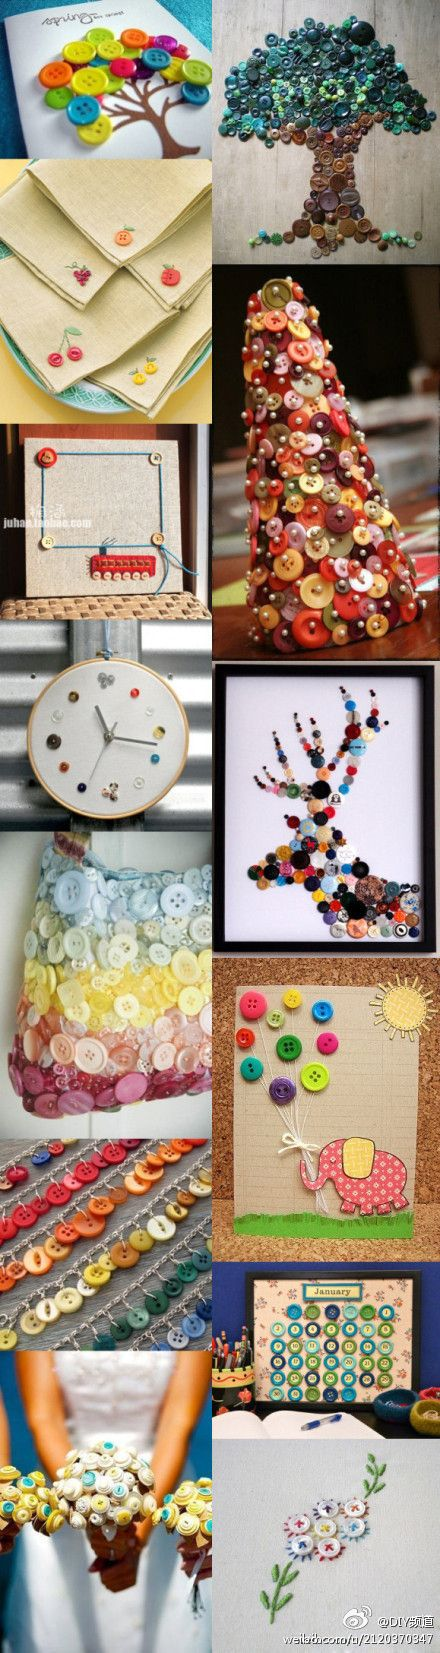 This is a great grouping of button crafts. Some I already have some I have never seen before.